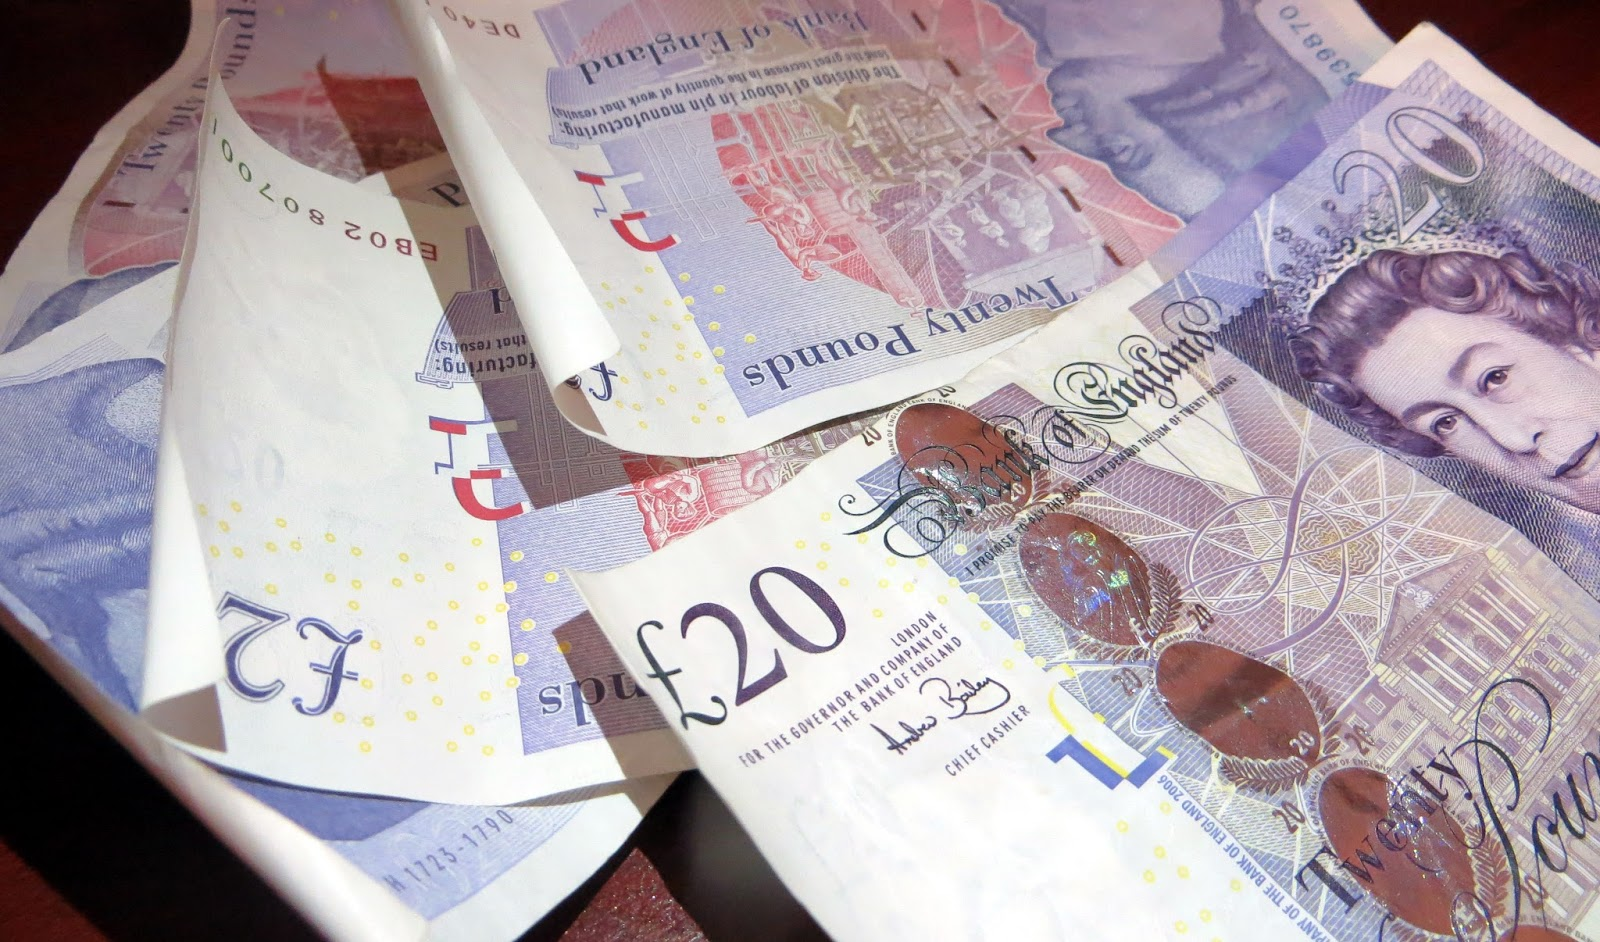 British pounds, £20, how to save for travelling, how to save for traveling, backpacking, travel, vacation, gap year, sabbatical, quit job and travel, money worries, budgeting, loans, debt,